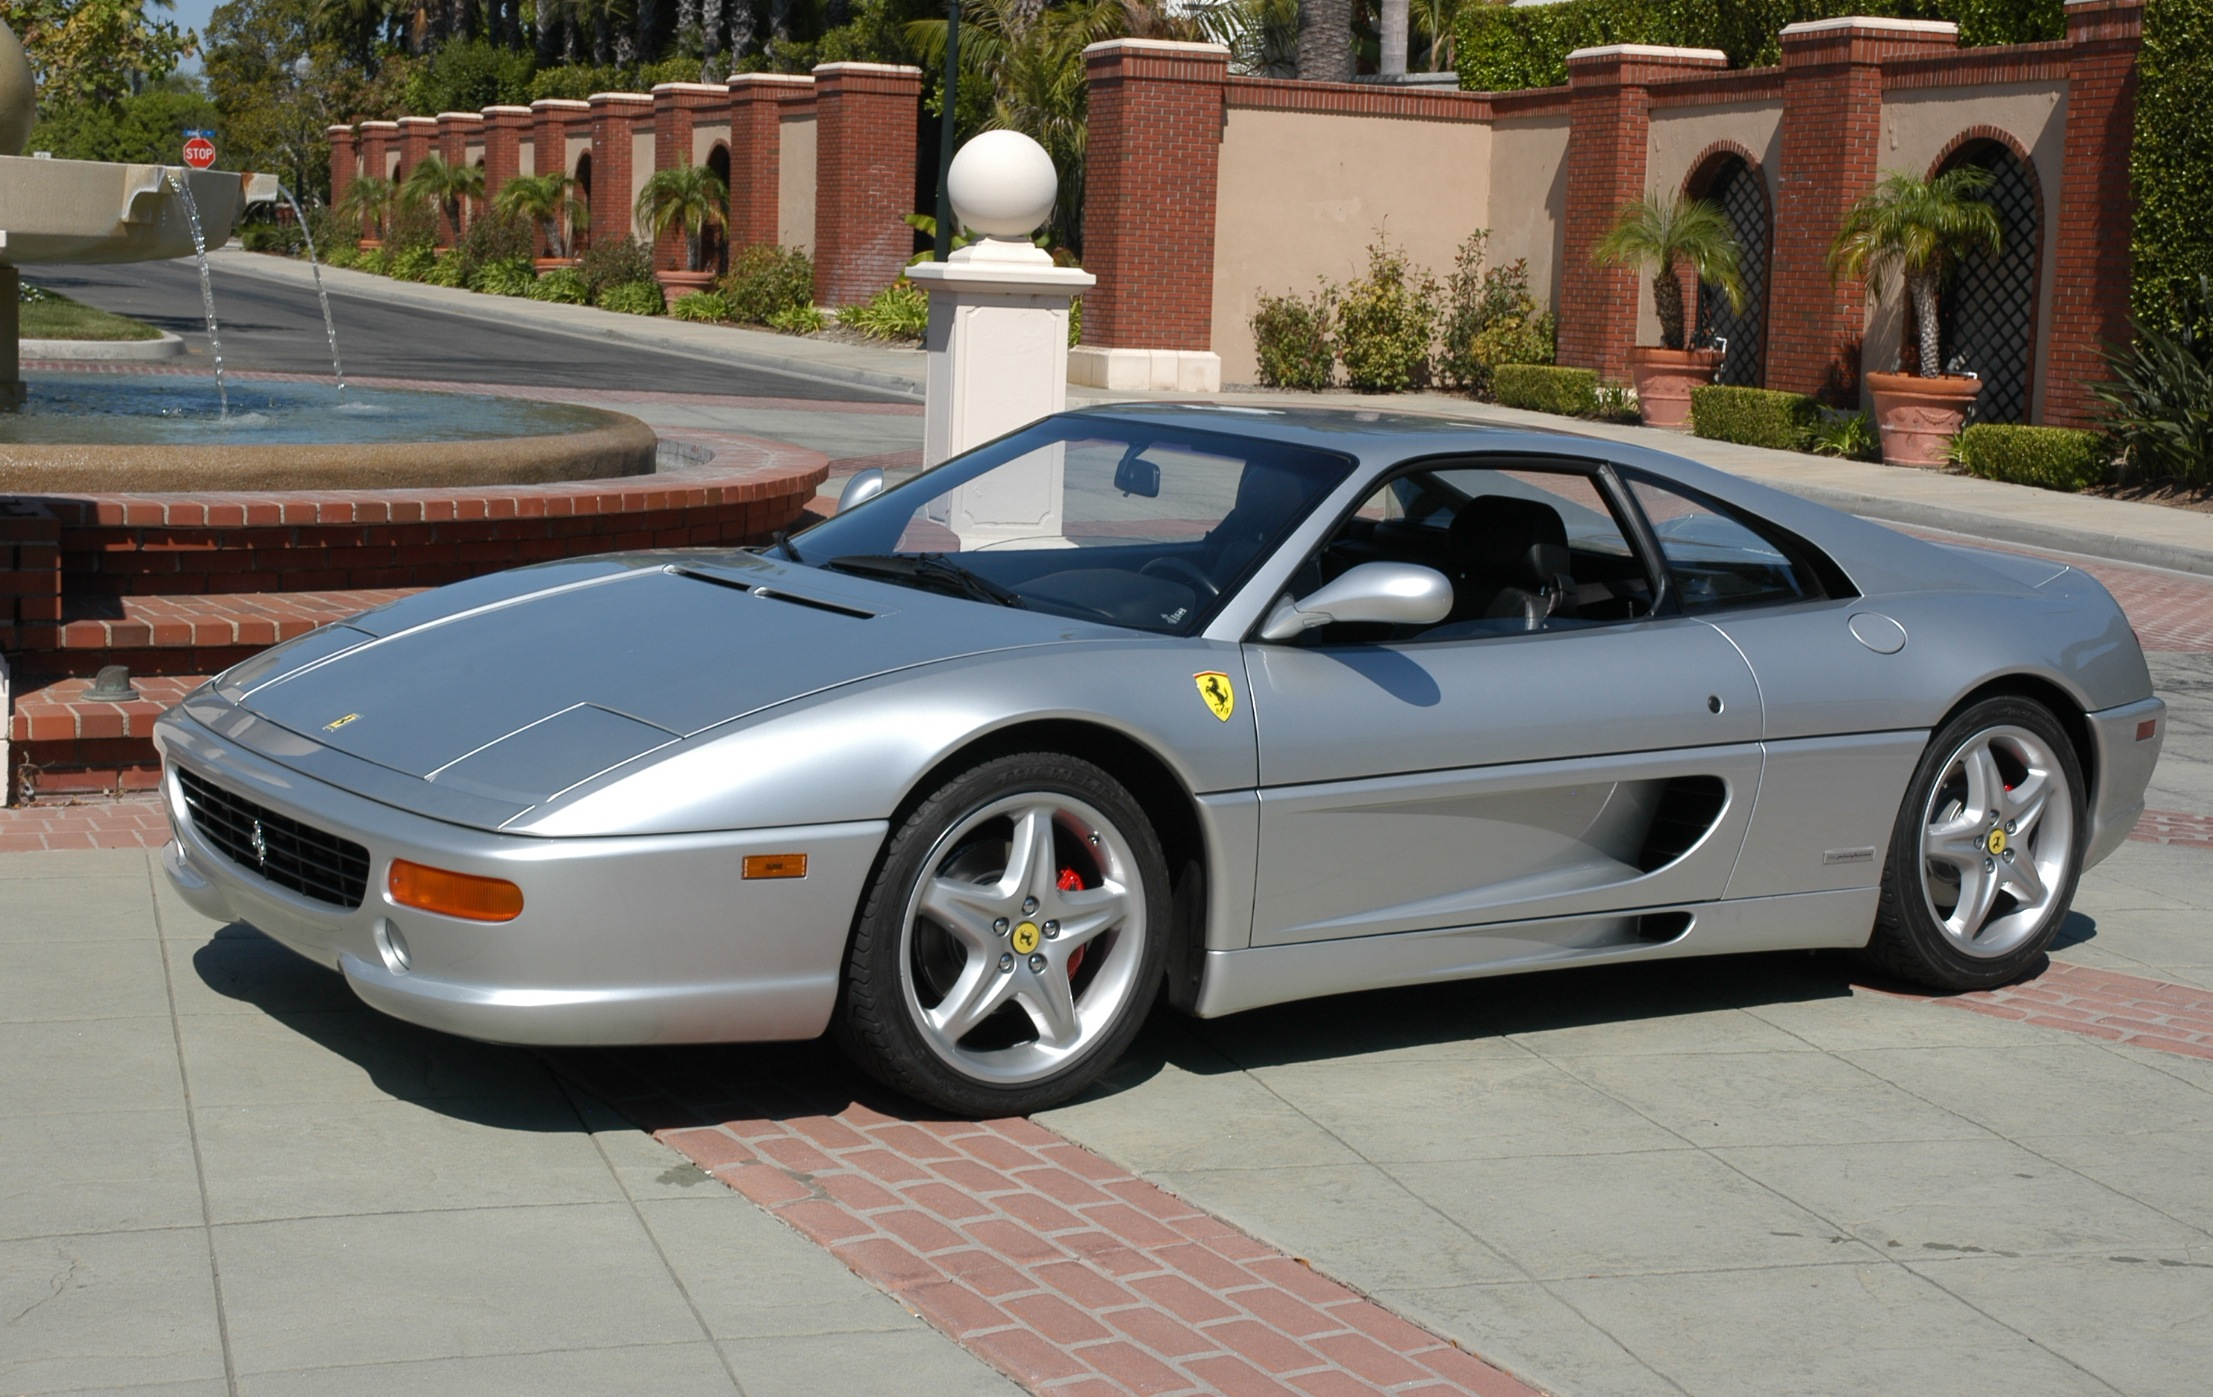 1999 ferrari f355 gtb classic italian cars for sale. Cars Review. Best American Auto & Cars Review